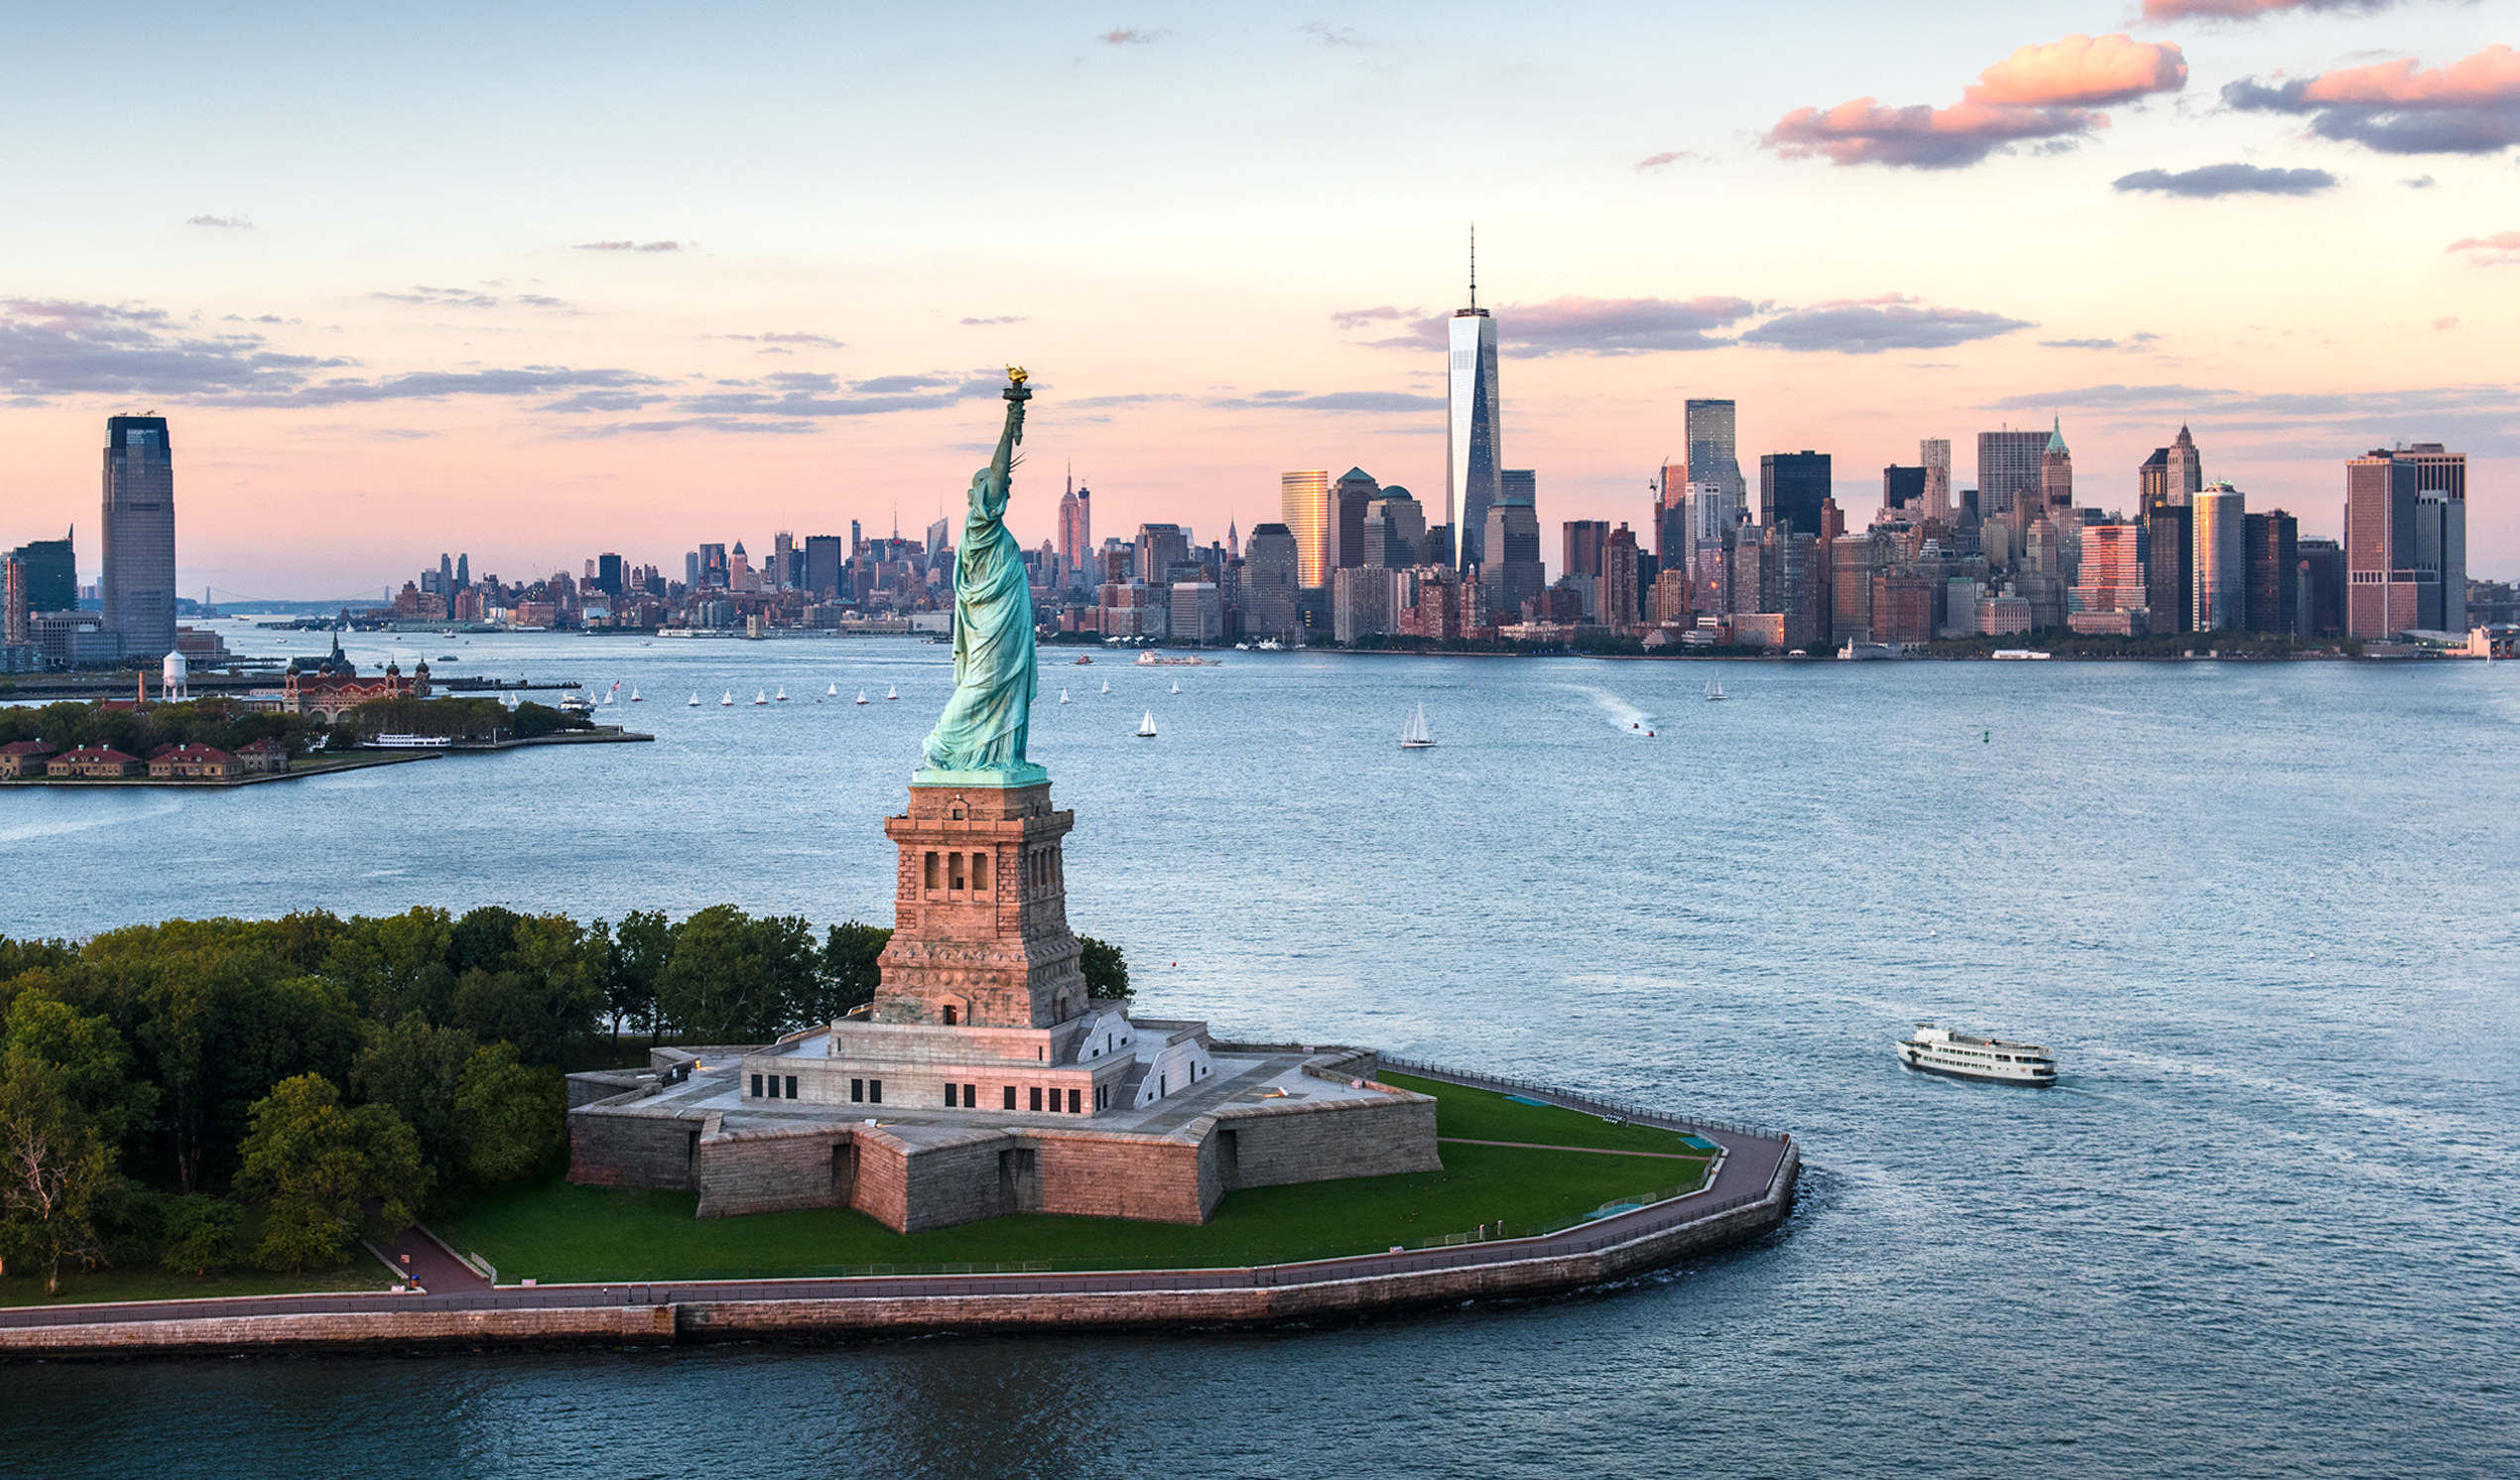 The Statue of LIberty's new museum